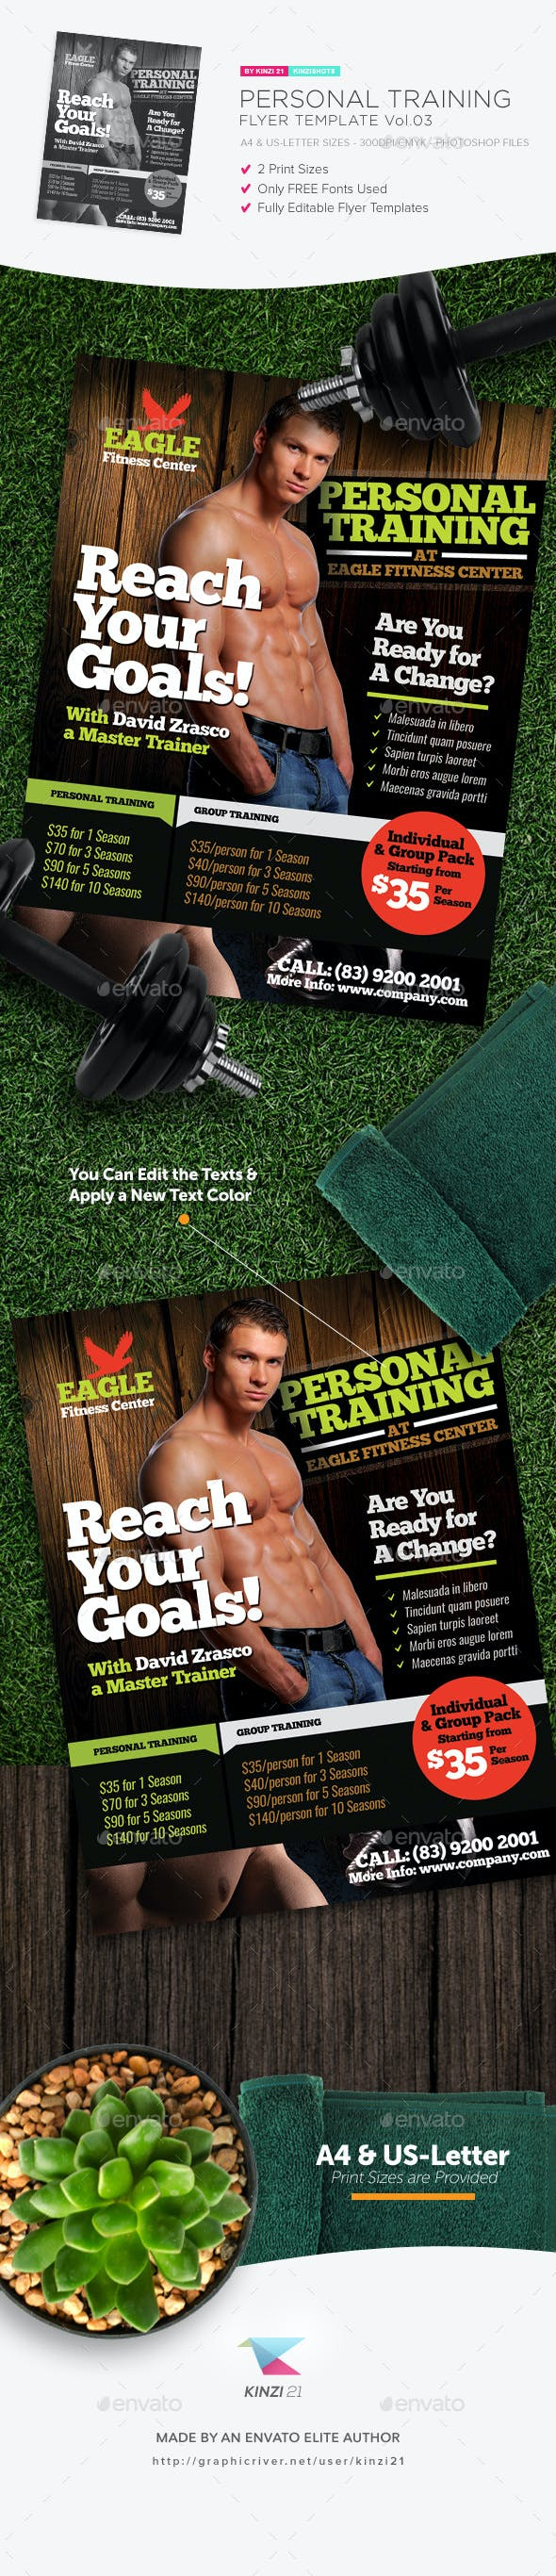 personal training flyer template v04 sports events